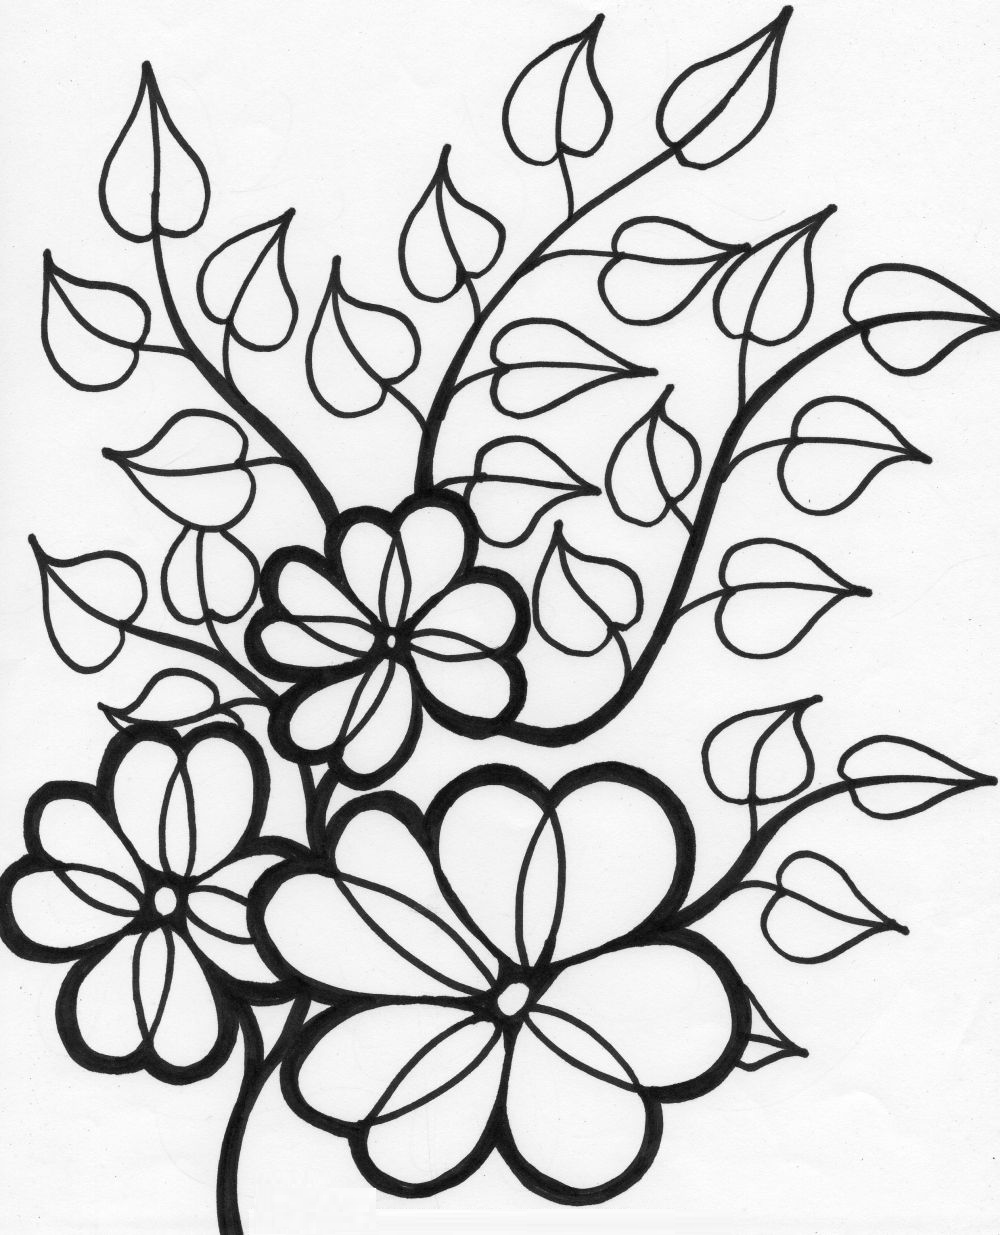 flowers coloring sheet large flowers coloring pages to download and print for free coloring sheet flowers